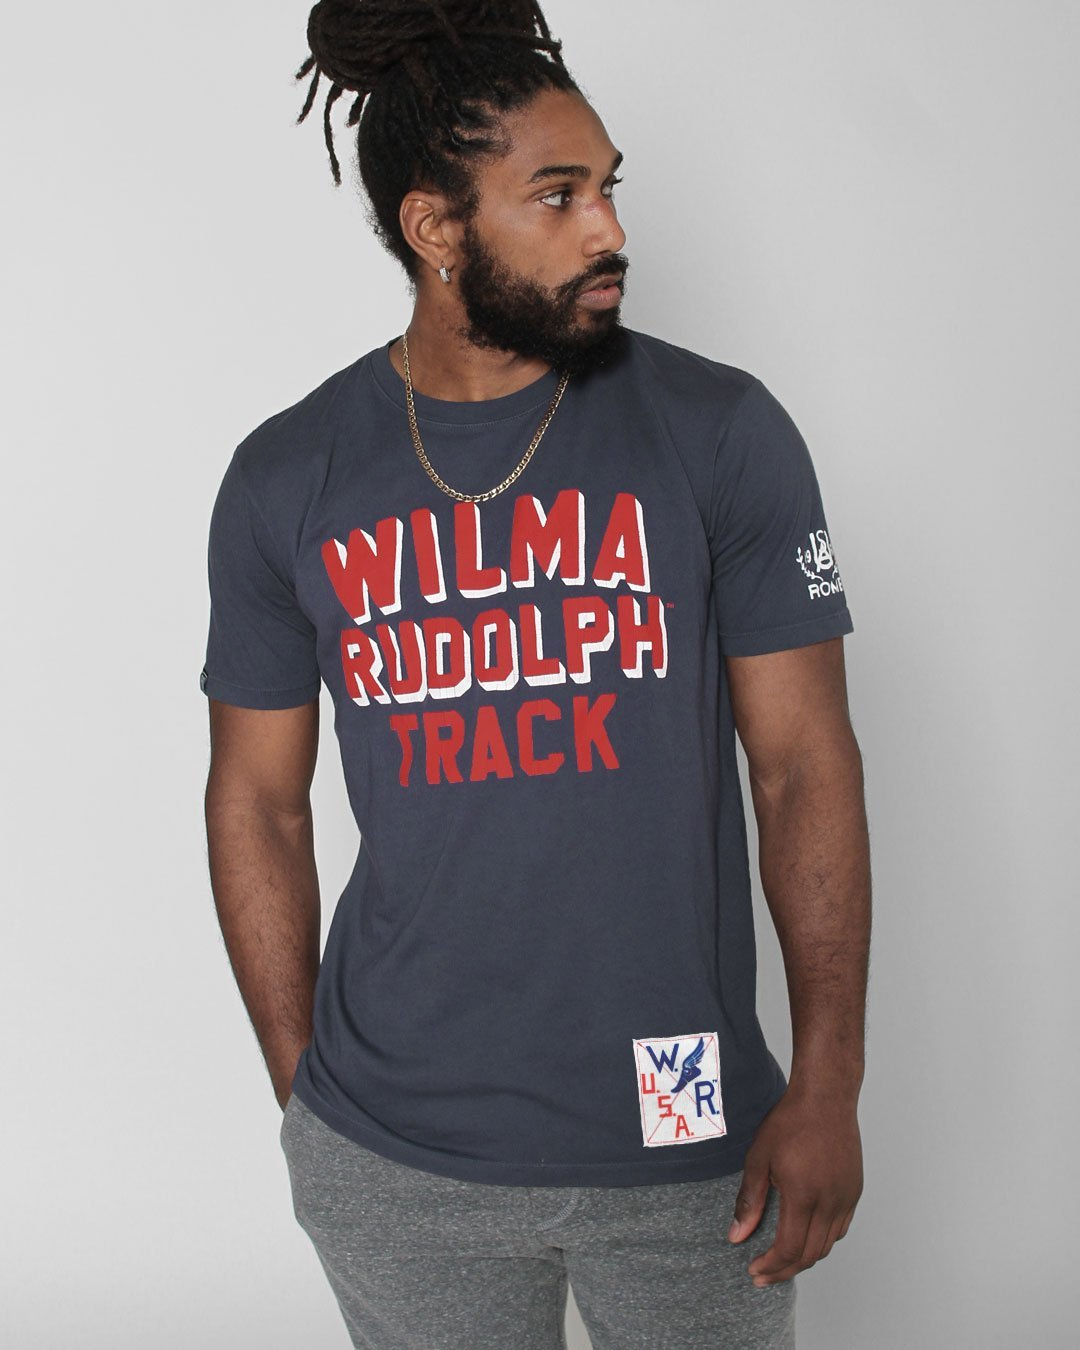 Wilma Rudolph USA Track Tee - Roots of Inc dba Roots of Fight